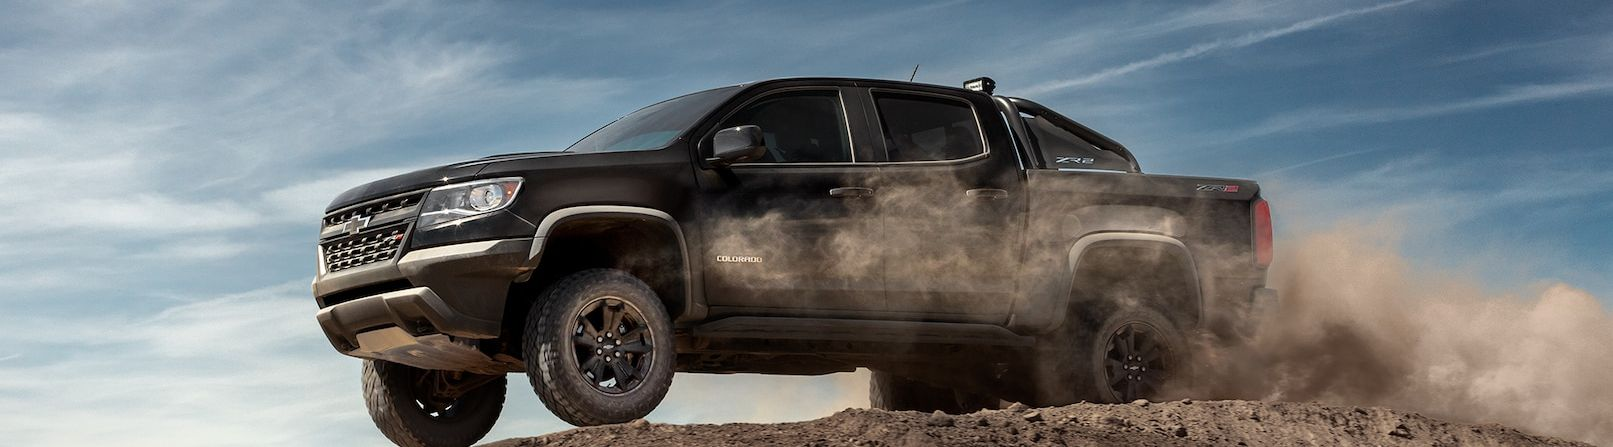 2019 Chevrolet Colorado for Sale near San Clemente, CA